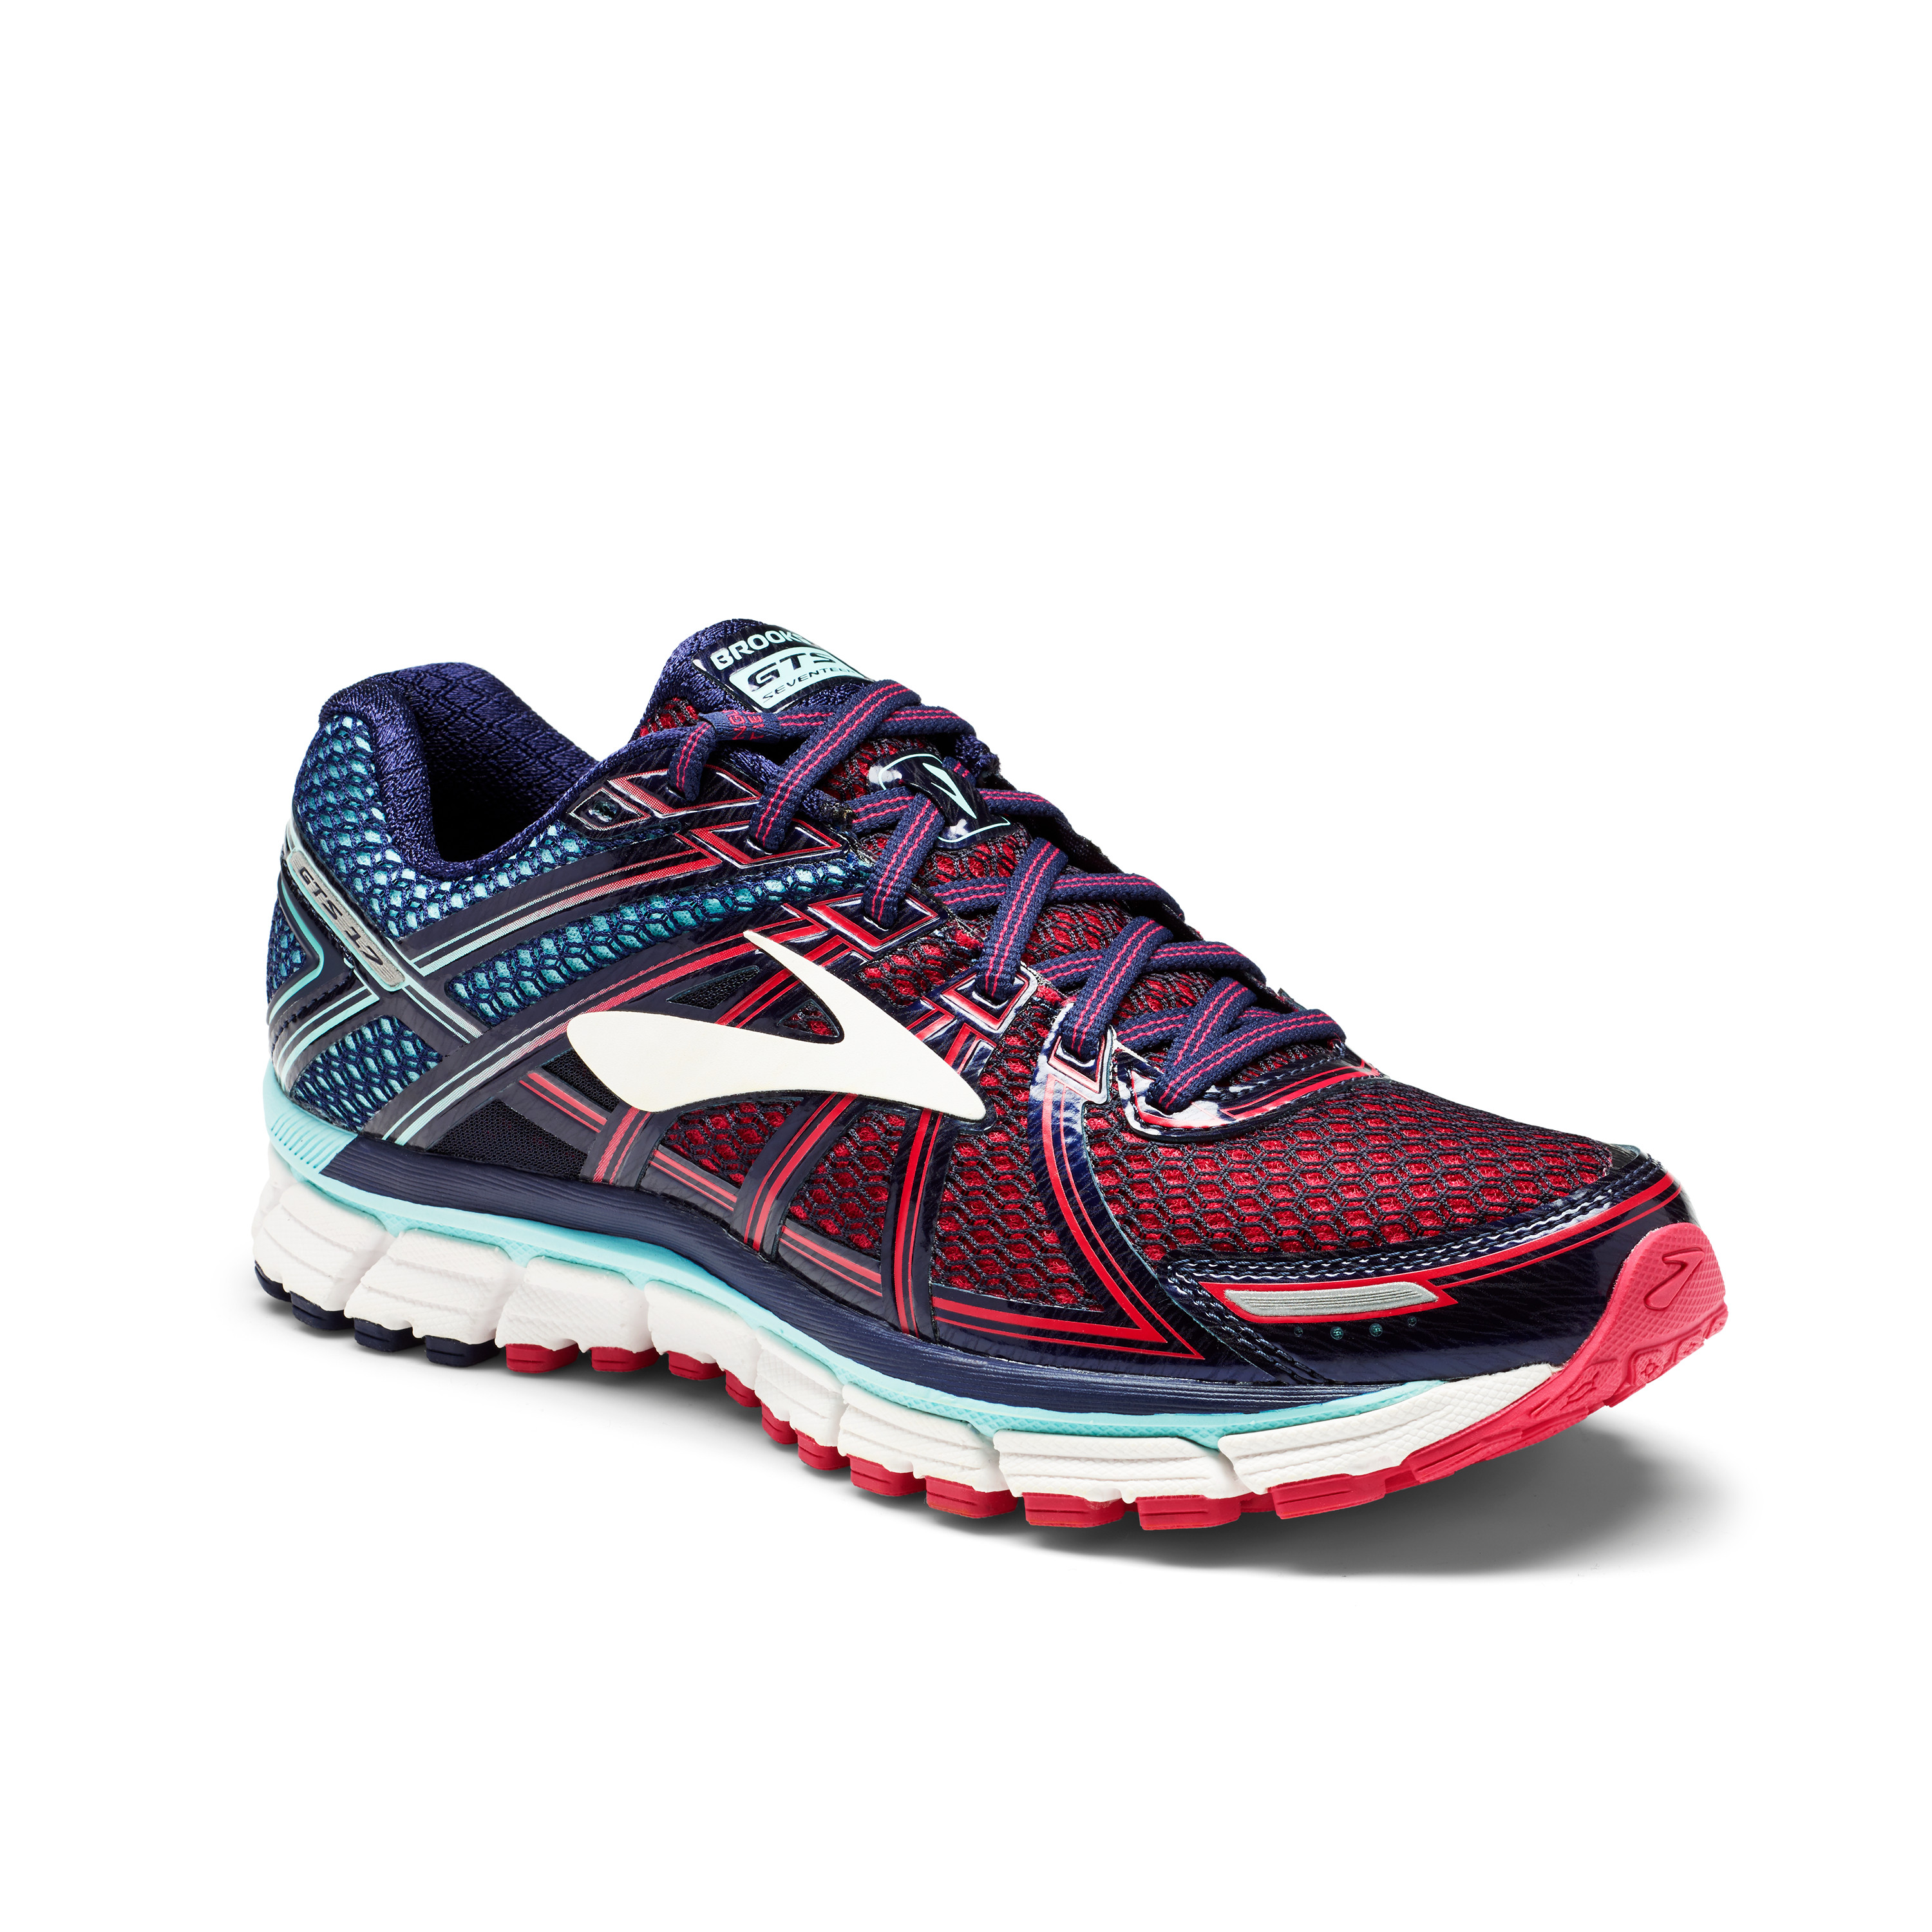 WOMEN'S ADRENALINE GTS 17